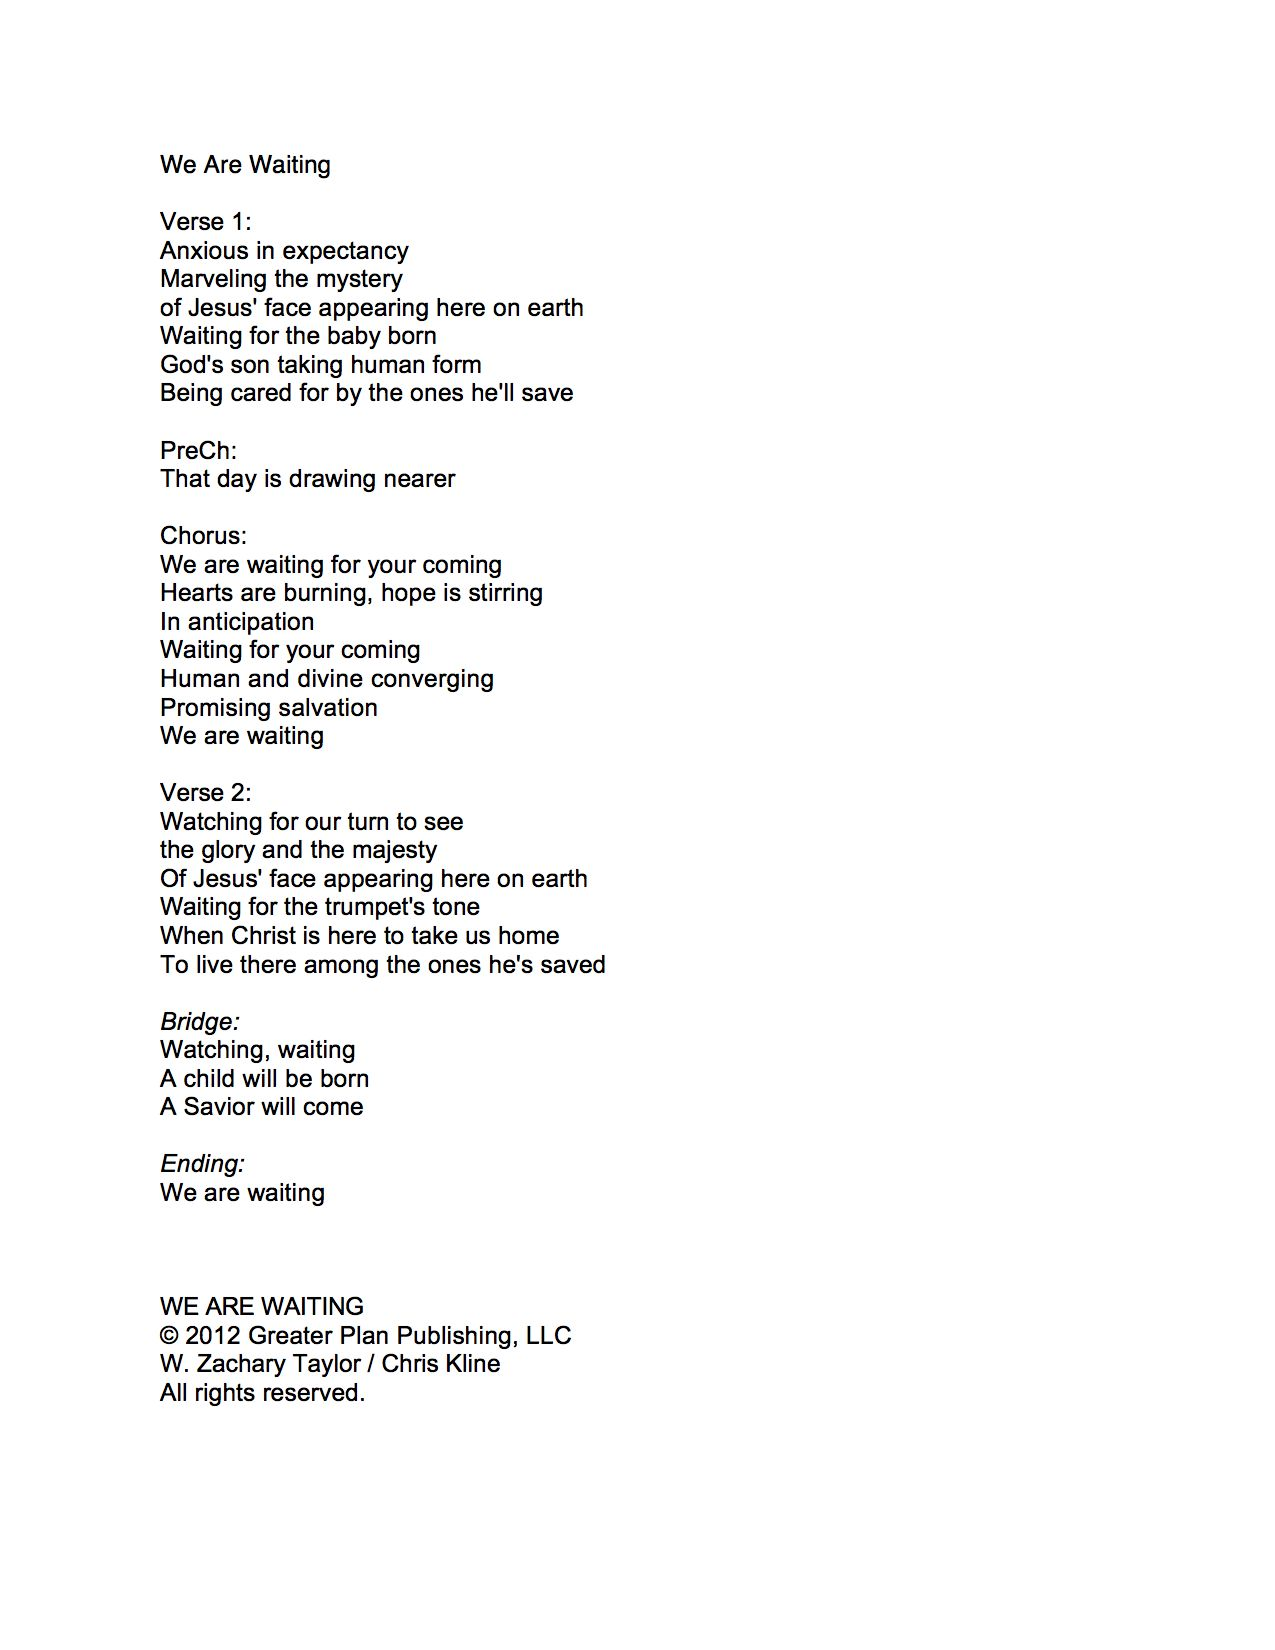 Worship current song we are waiting we are waiting lyrics hexwebz Image collections